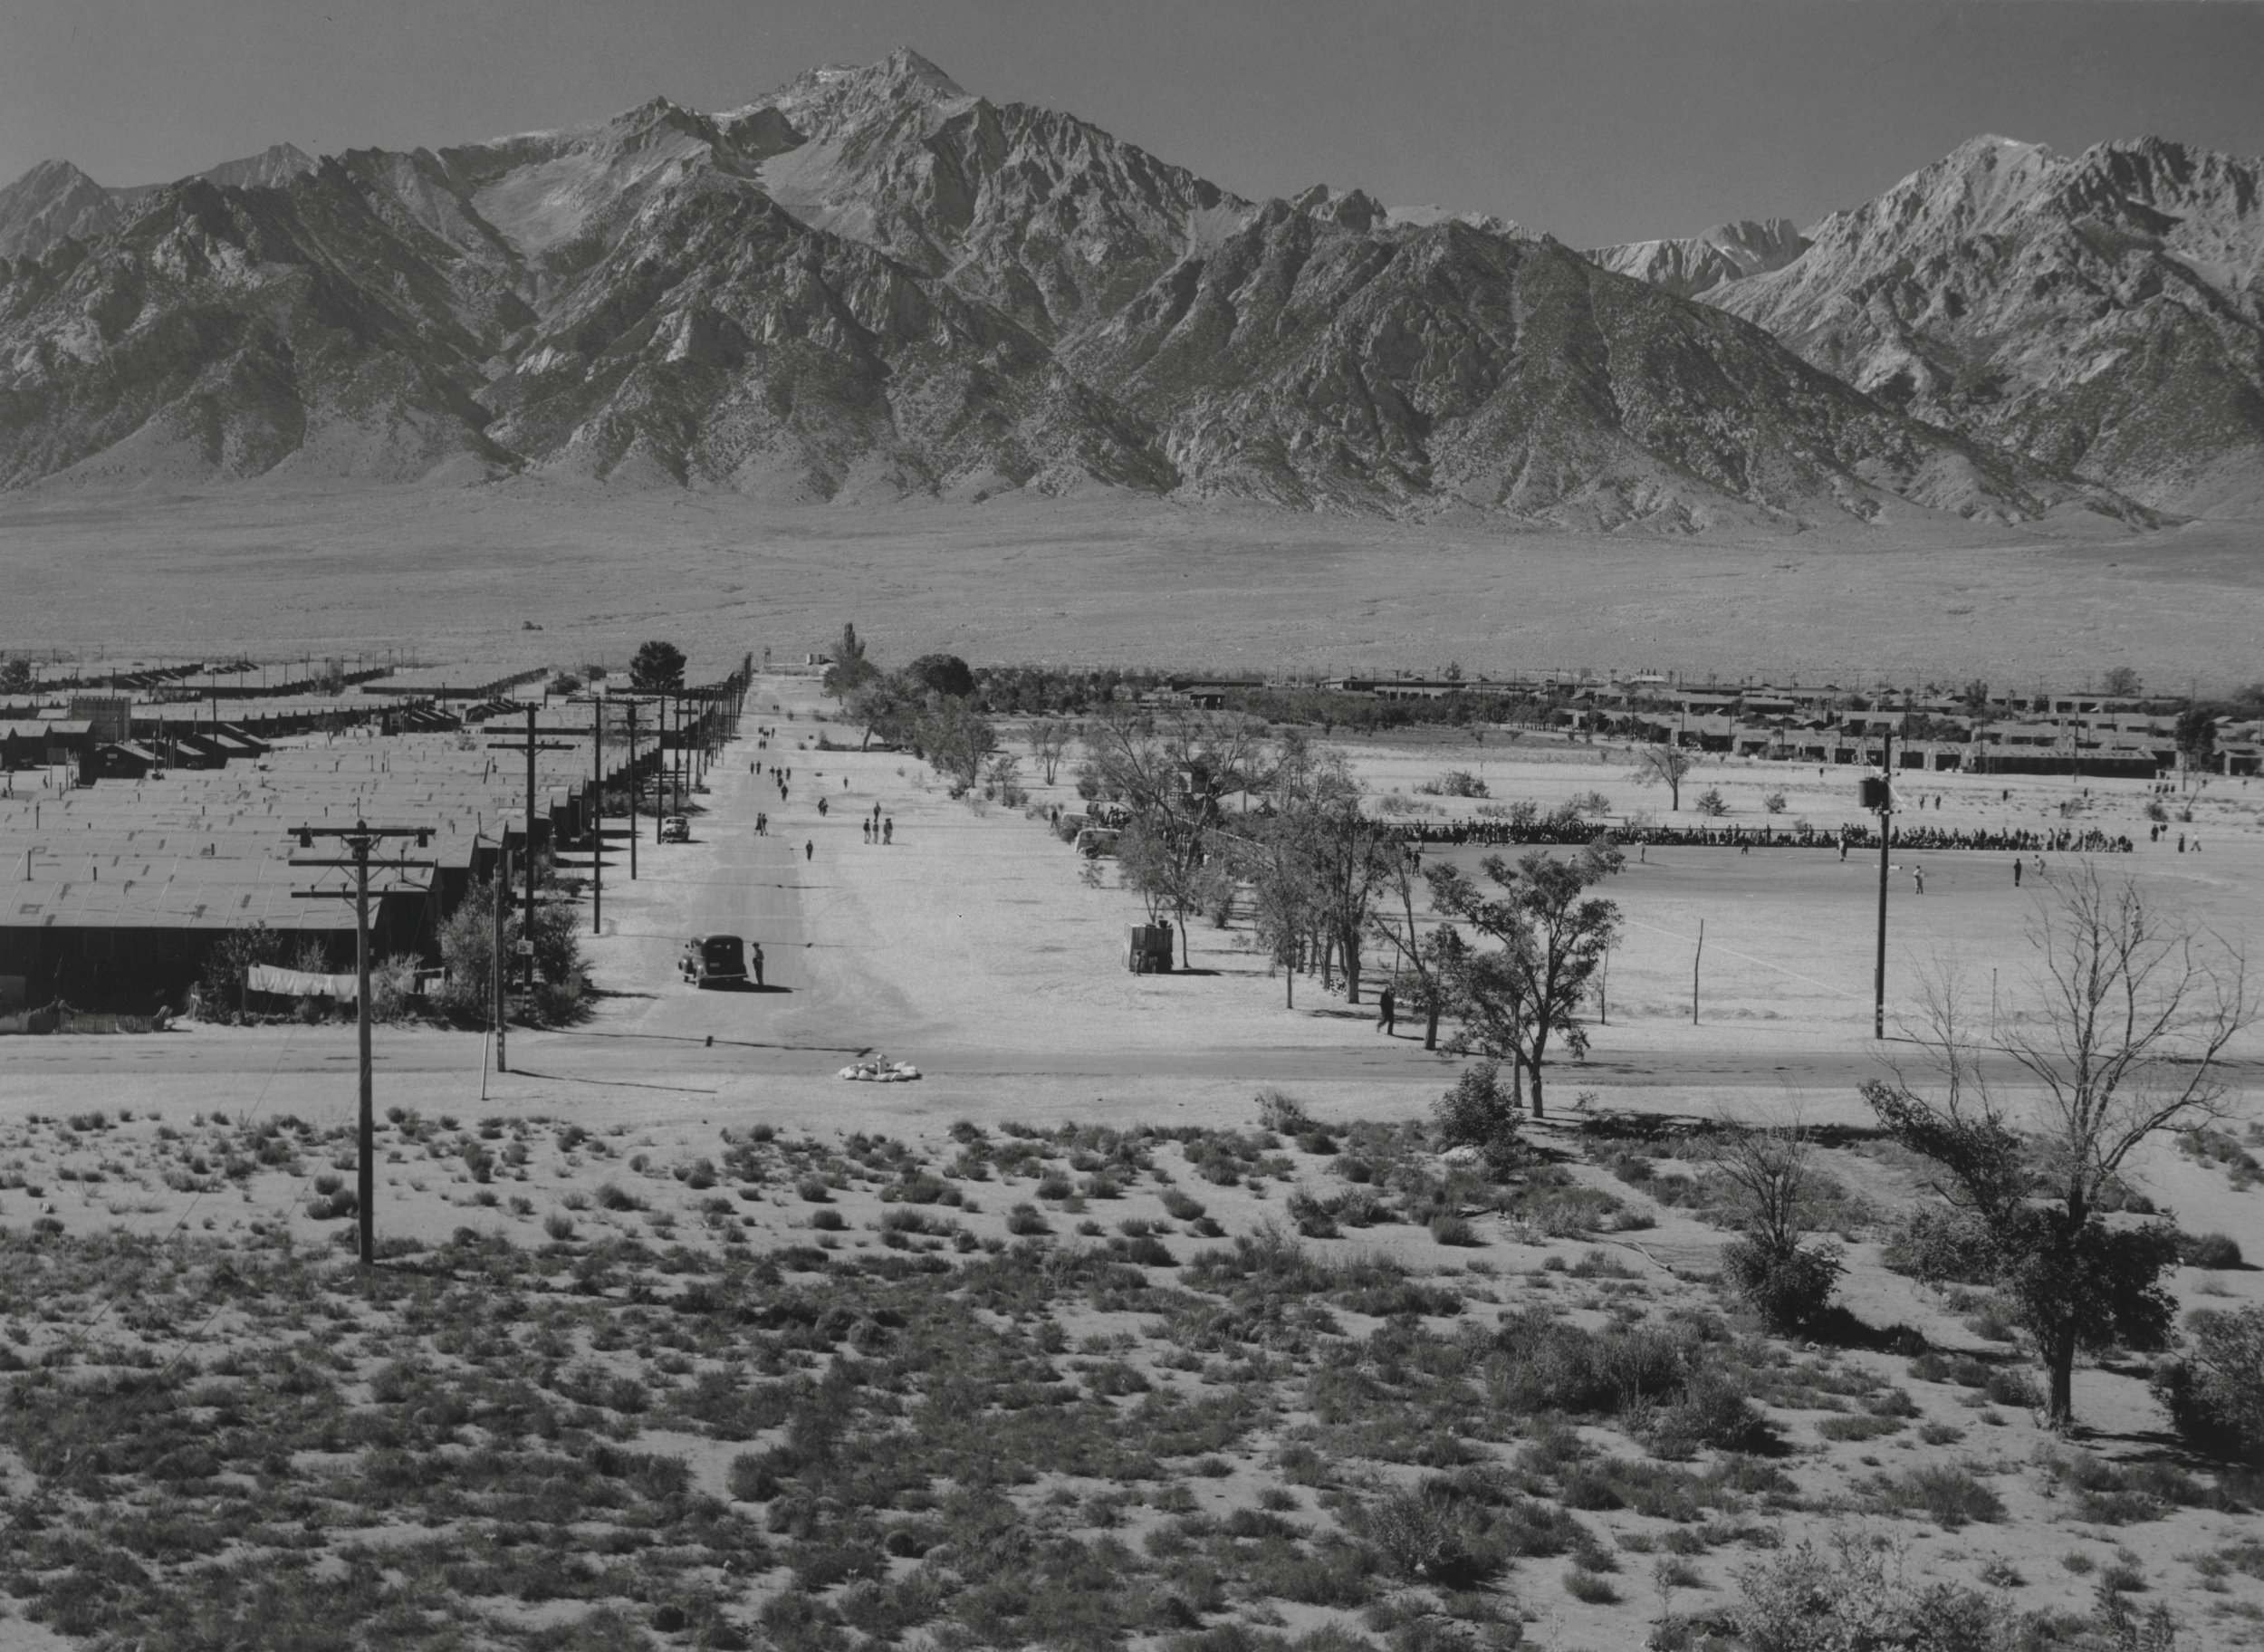 World War II: Japanese-American Internment Entrenched